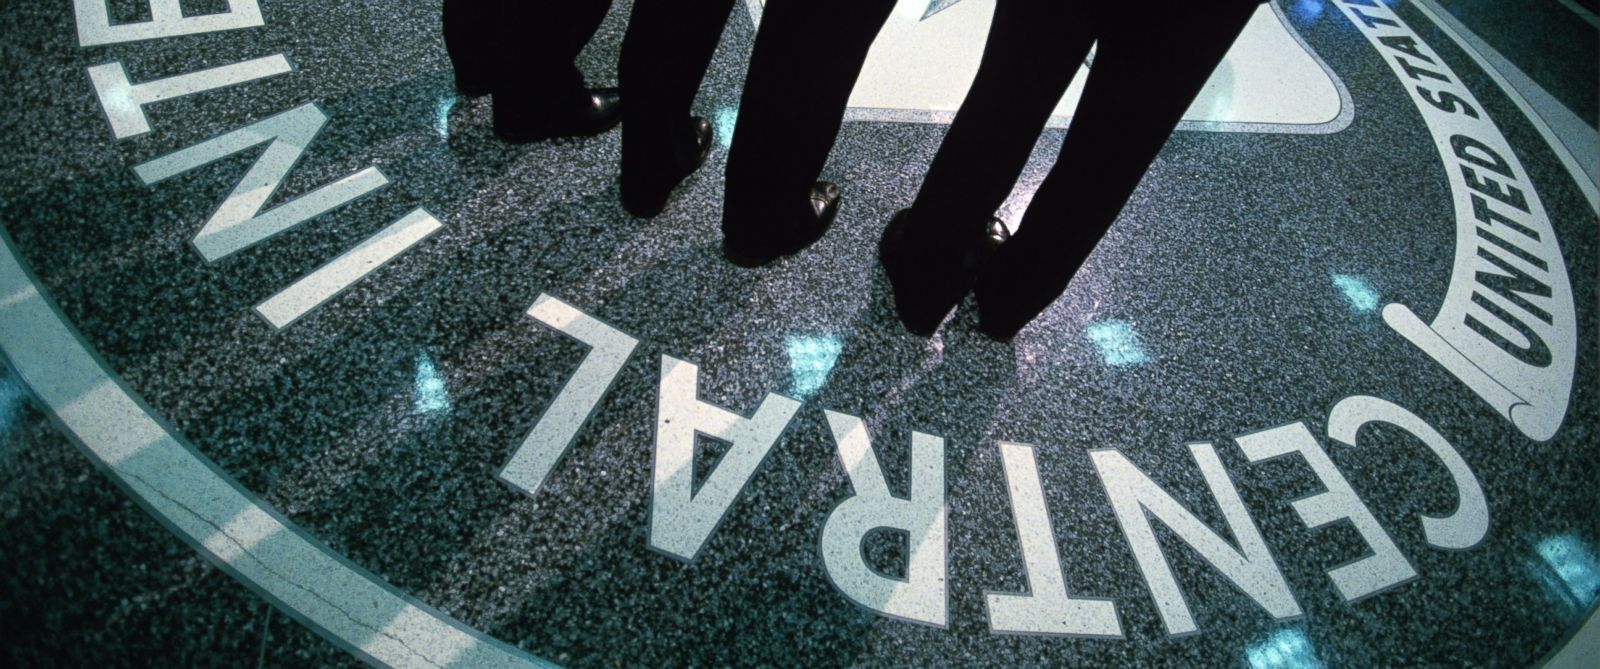 PHOTO: The CIA symbol is shown on the floor of CIA Headquarters at CIA headquarters in Langley, Virginia, July 9, 2014.